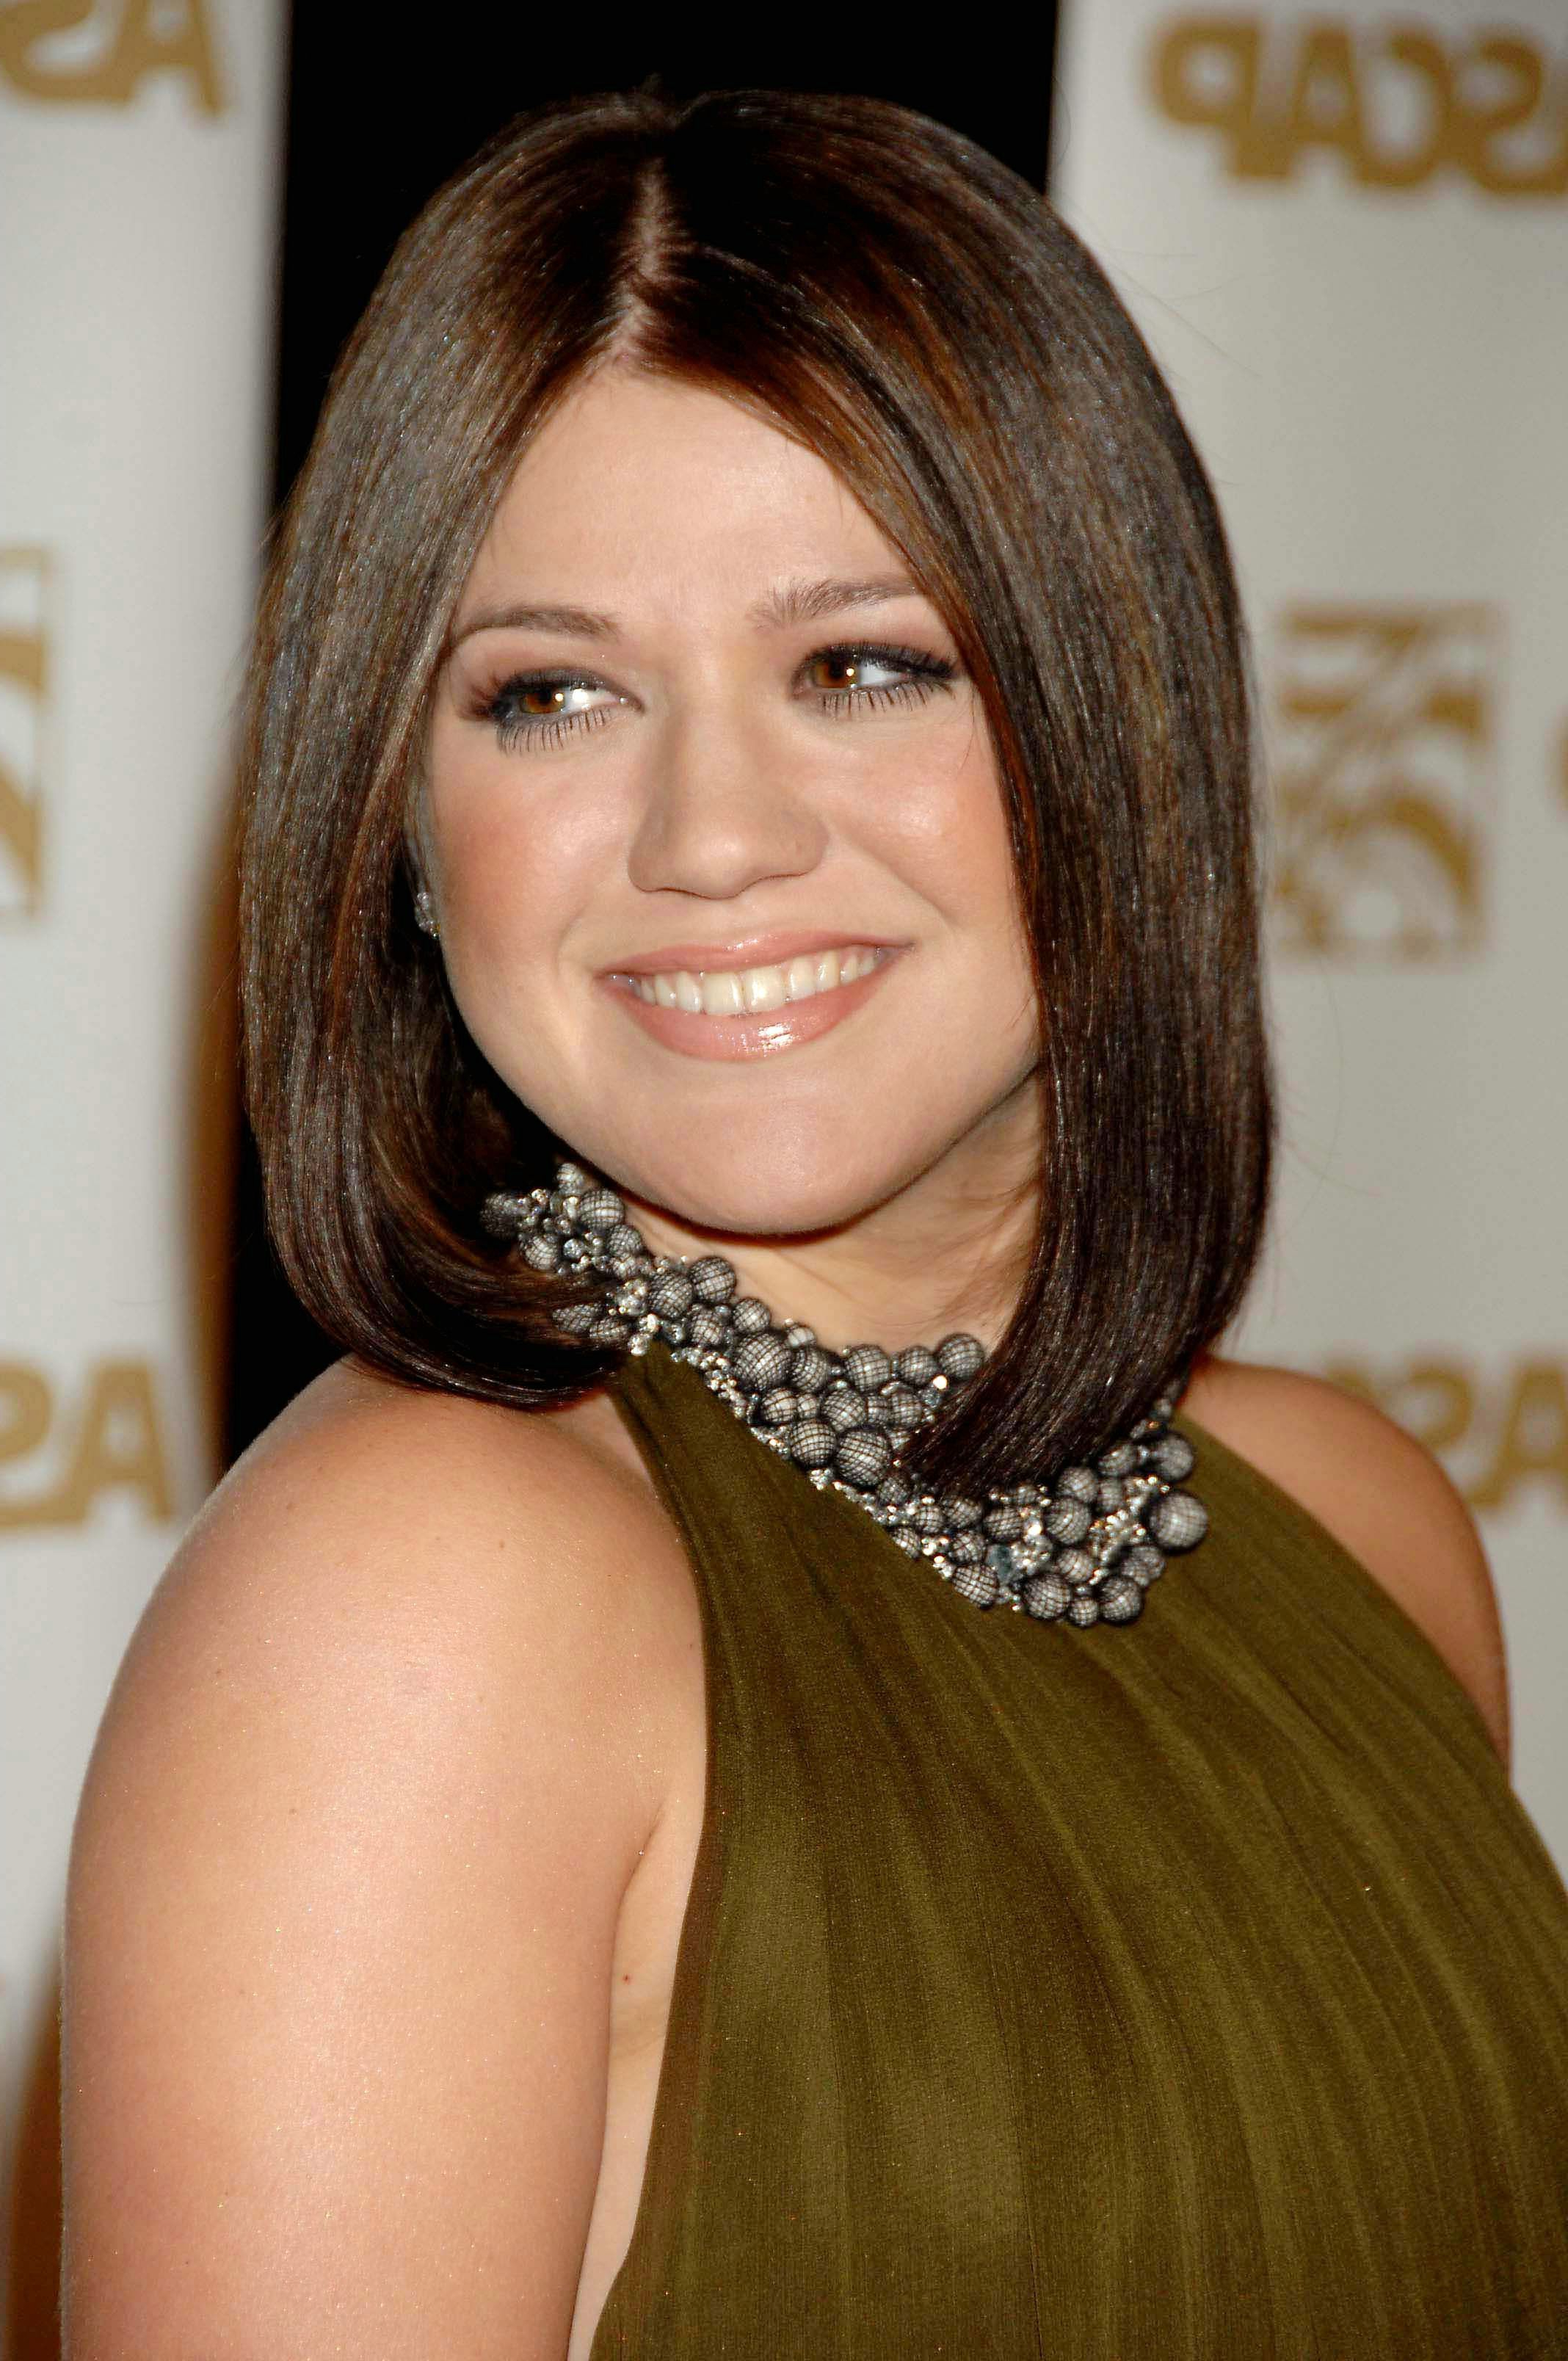 Kelly Clarkson | Long Haircute Hairstyles Cut | Pinterest | Hair Intended For Kelly Clarkson Short Hairstyles (View 11 of 25)